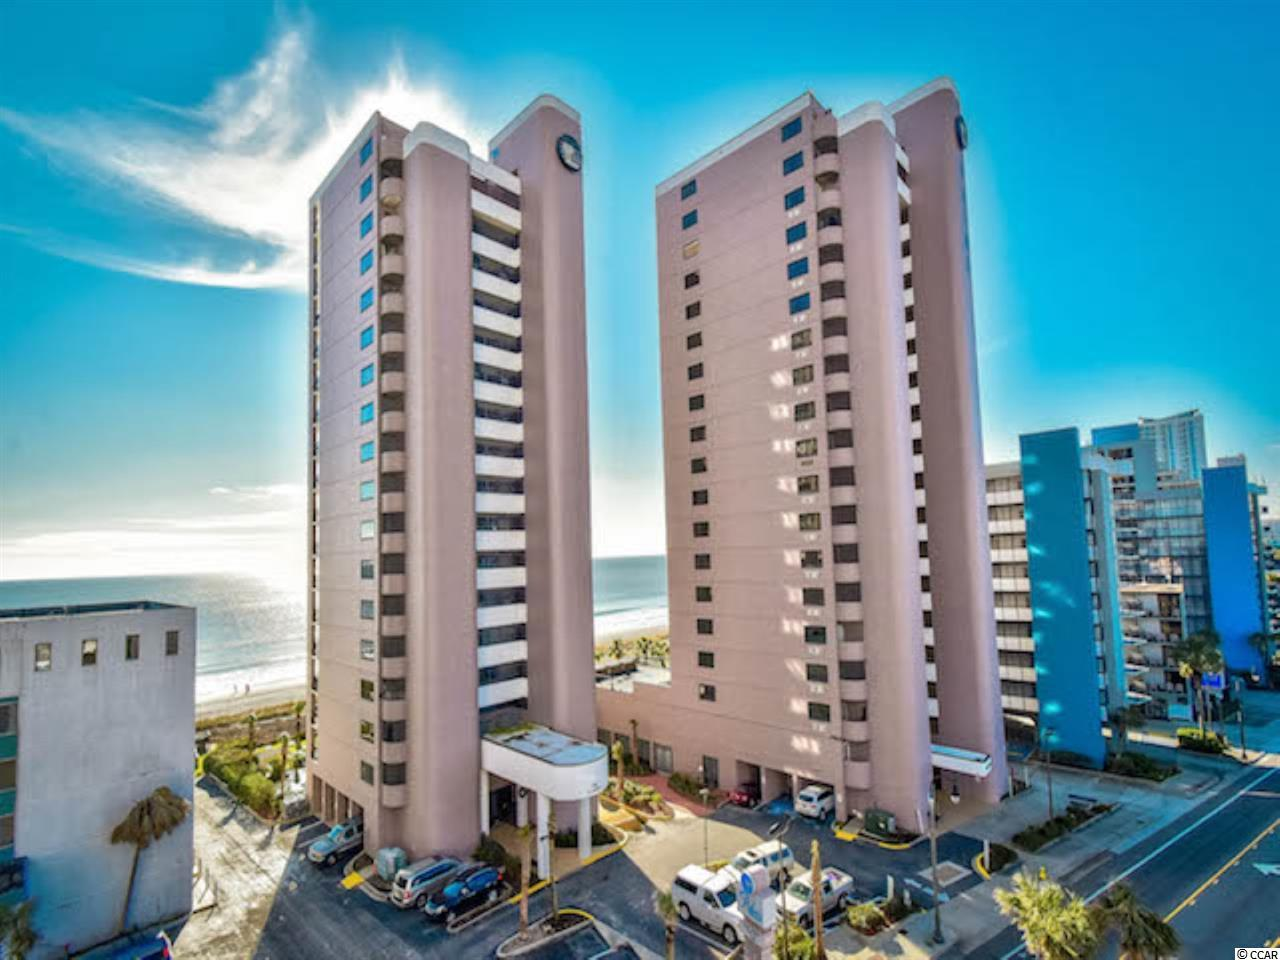 Luxury living at it's finest in this Myrtle Beach 2-story Penthouse Suite!  Rare opportunity to own one or both of the Penthouse suites at The Palms Resort. Both condos are very nicely furnished and will welcome you home with  beach-themed decor. After a busy day enjoying all of the amenities that are offered, you can relax  and enjoy the wall mounted flat-screen TV.  Sit at the breakfast bar or dining room table and enjoy visiting with family and friends while you create a fabulous meal in the fully furnished kitchen. A full sized washer and dryer are conveniently located right in the kitchen.  From the comfortably furnished living room, open the sliding glass doors to the balcony and  enjoy the beverage of your choice. The view from the Penthouse Suites is unmatched anywhere in the area! You have an incredible view of the Atlantic Ocean. Listen to the rolling waves all night long as the sliding glass doors in the large master bedroom also open onto the balcony. Take the private walkway to a grassy area furnished for your enjoyment with lounge tables and umbrellas or continue onto the white, sandy beach. This luxurious, seaside retreat is located in the heart of Myrtle Beach, one of the most enjoyed vacation destinations along the East coast. The breathtaking, oceanfront location means that access to the gently rolling waves of the Atlantic Ocean and the beautiful, white sand beaches of the Grand Strand are just steps away. The resort offers 6 pools and spas and is located just blocks away from all of the shopping, dining and entertainment that Myrtle Beach has to offer. Enjoy Penthouse living for yourself and family and makes a great investment property.